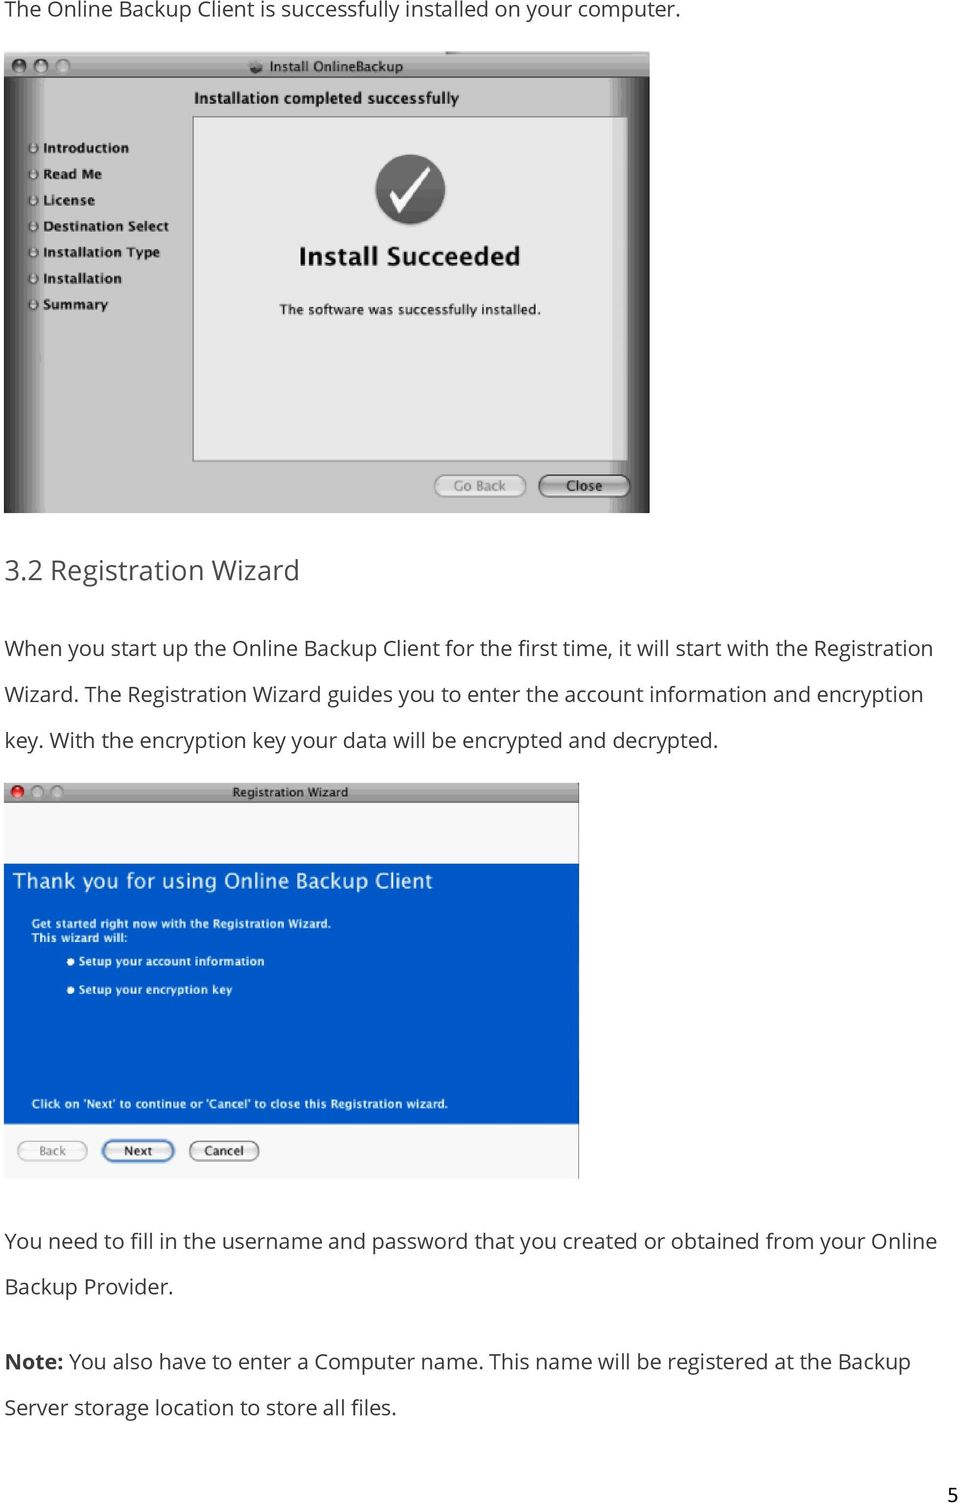 The Registration Wizard guides you to enter the account information and encryption key.